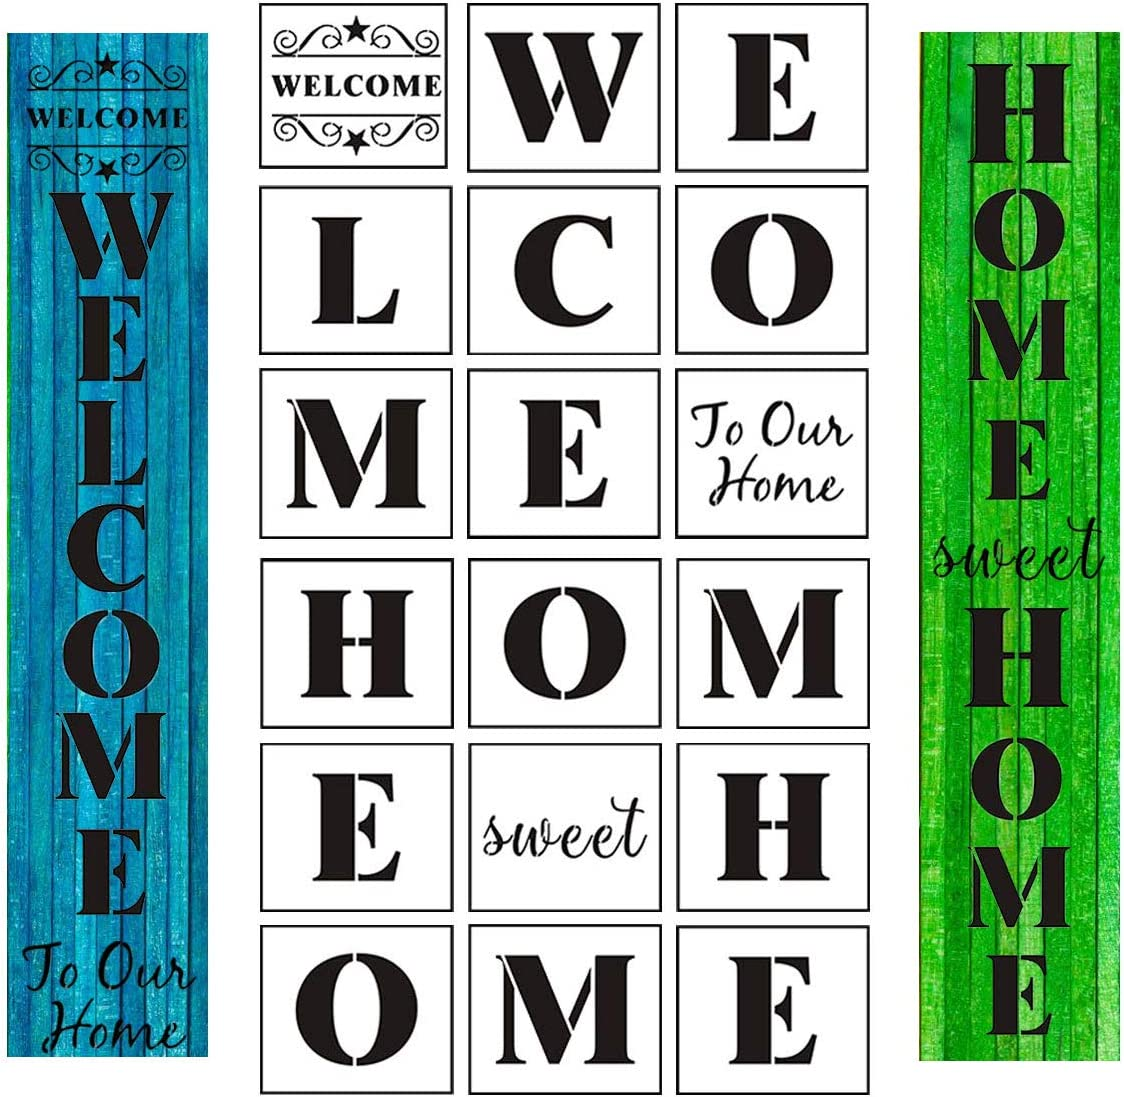 18 Pack Large Vertical Welcome and Home Sign Stencils Templates for Create Beautiful Wood Signs, Reusable Letter Stencils for Making a DIY Welcome Home Sign